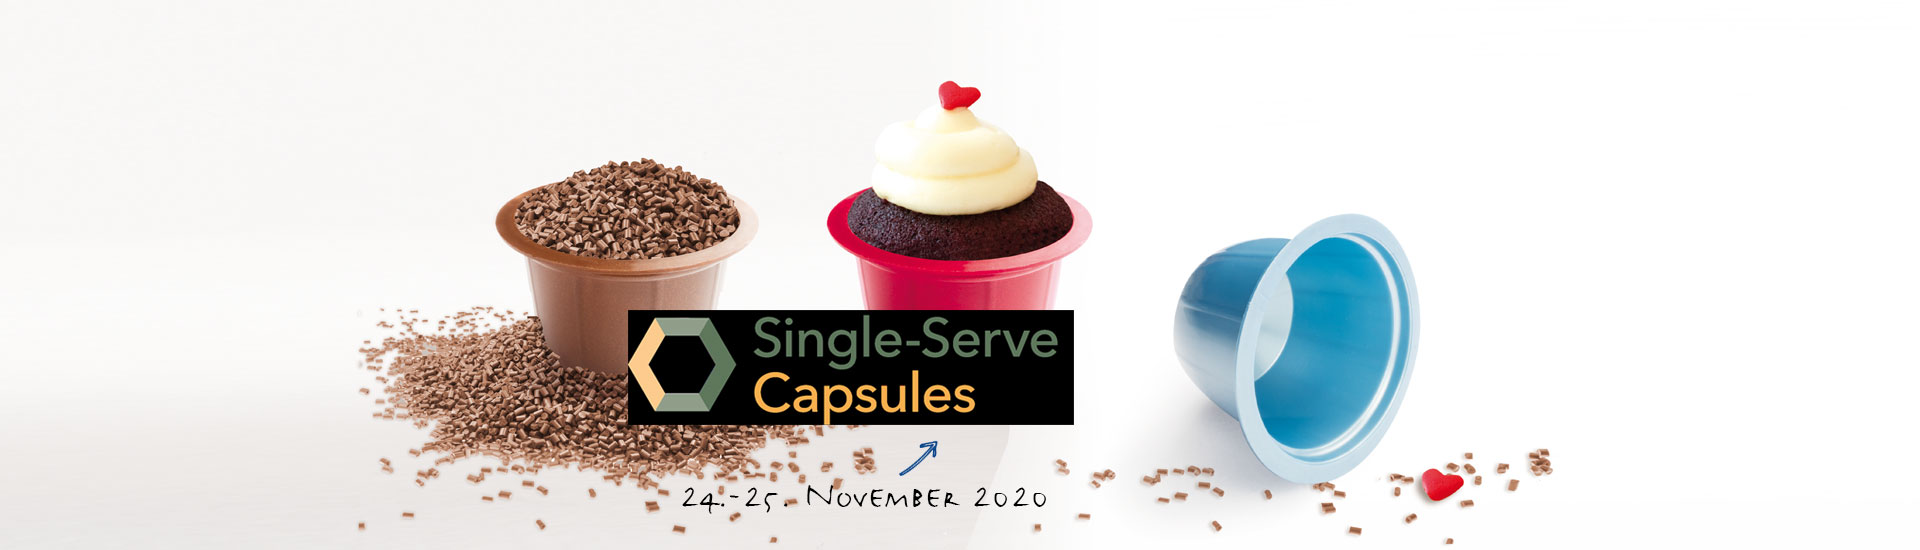 Single Serve Capsules Conference Berlin 2020 Gabriel Chemie Masterbatch - Kapselkonferenz Deutschland